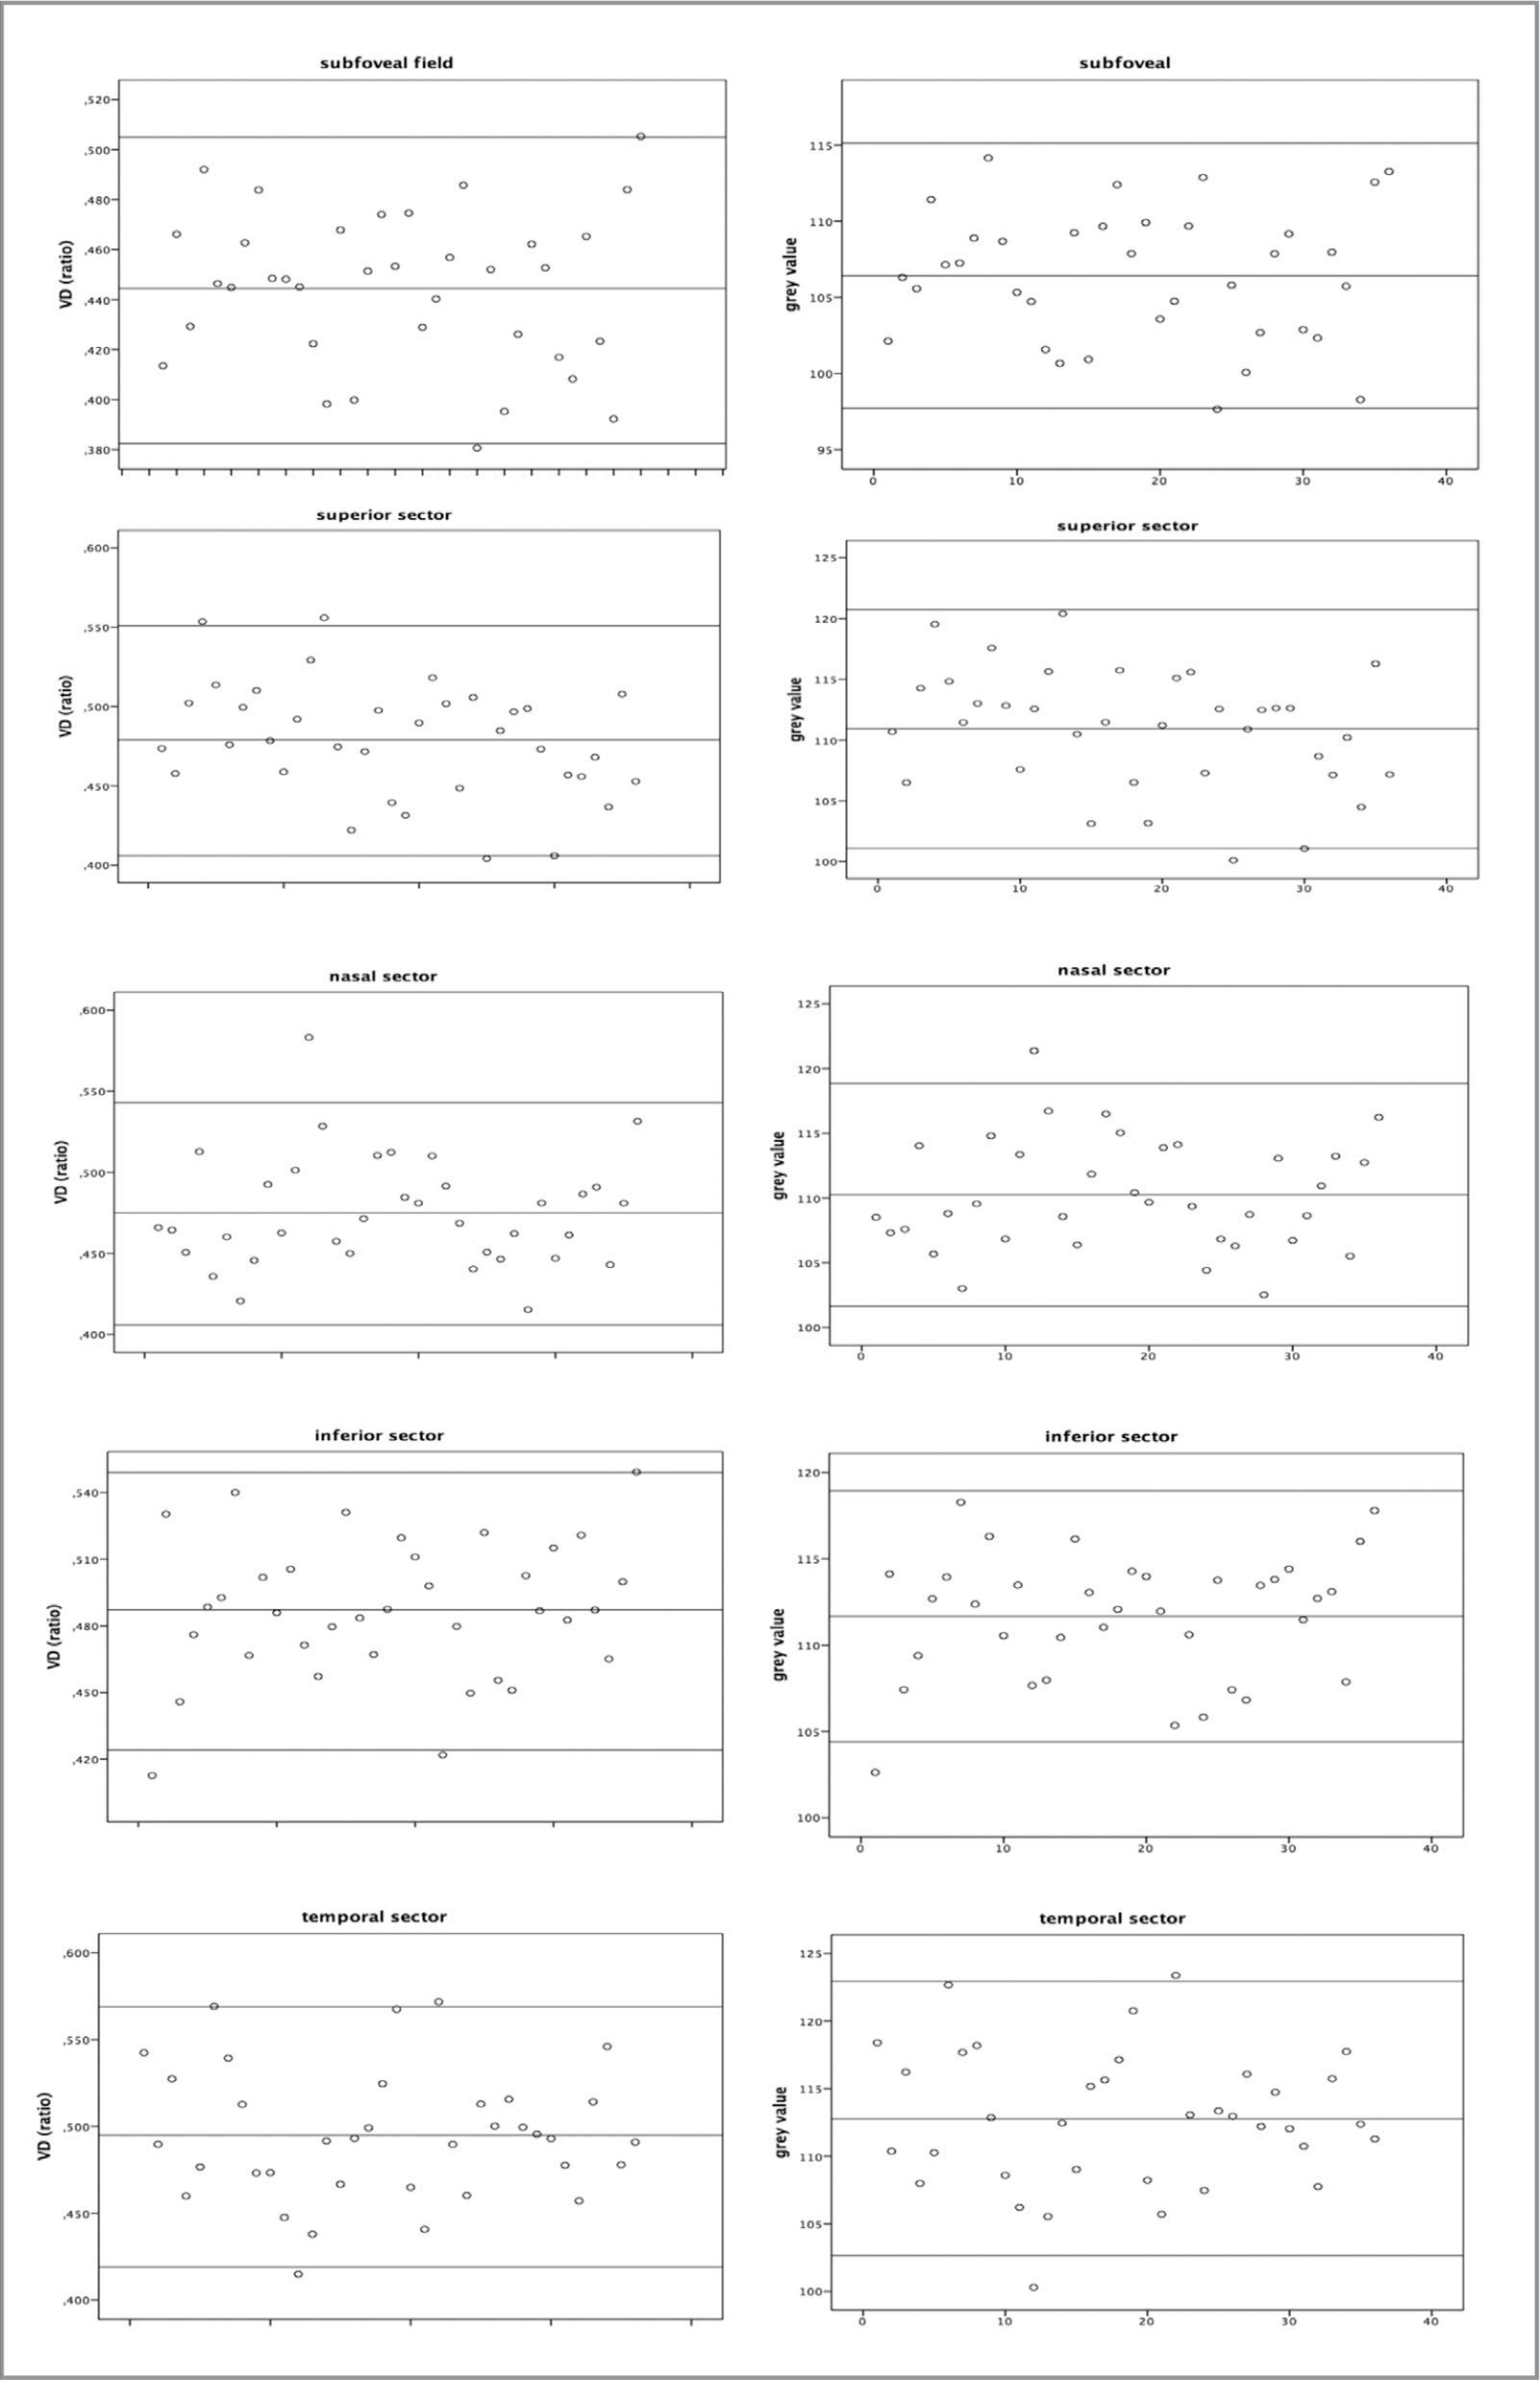 Left column shows the distribution of the measured vessel density ratio (Y axis) for each patient (X axis) according to the region of interest. The middle line represents the mean of all lines, and upper and lower lines represent the standard deviation. Right column represents the grey value.